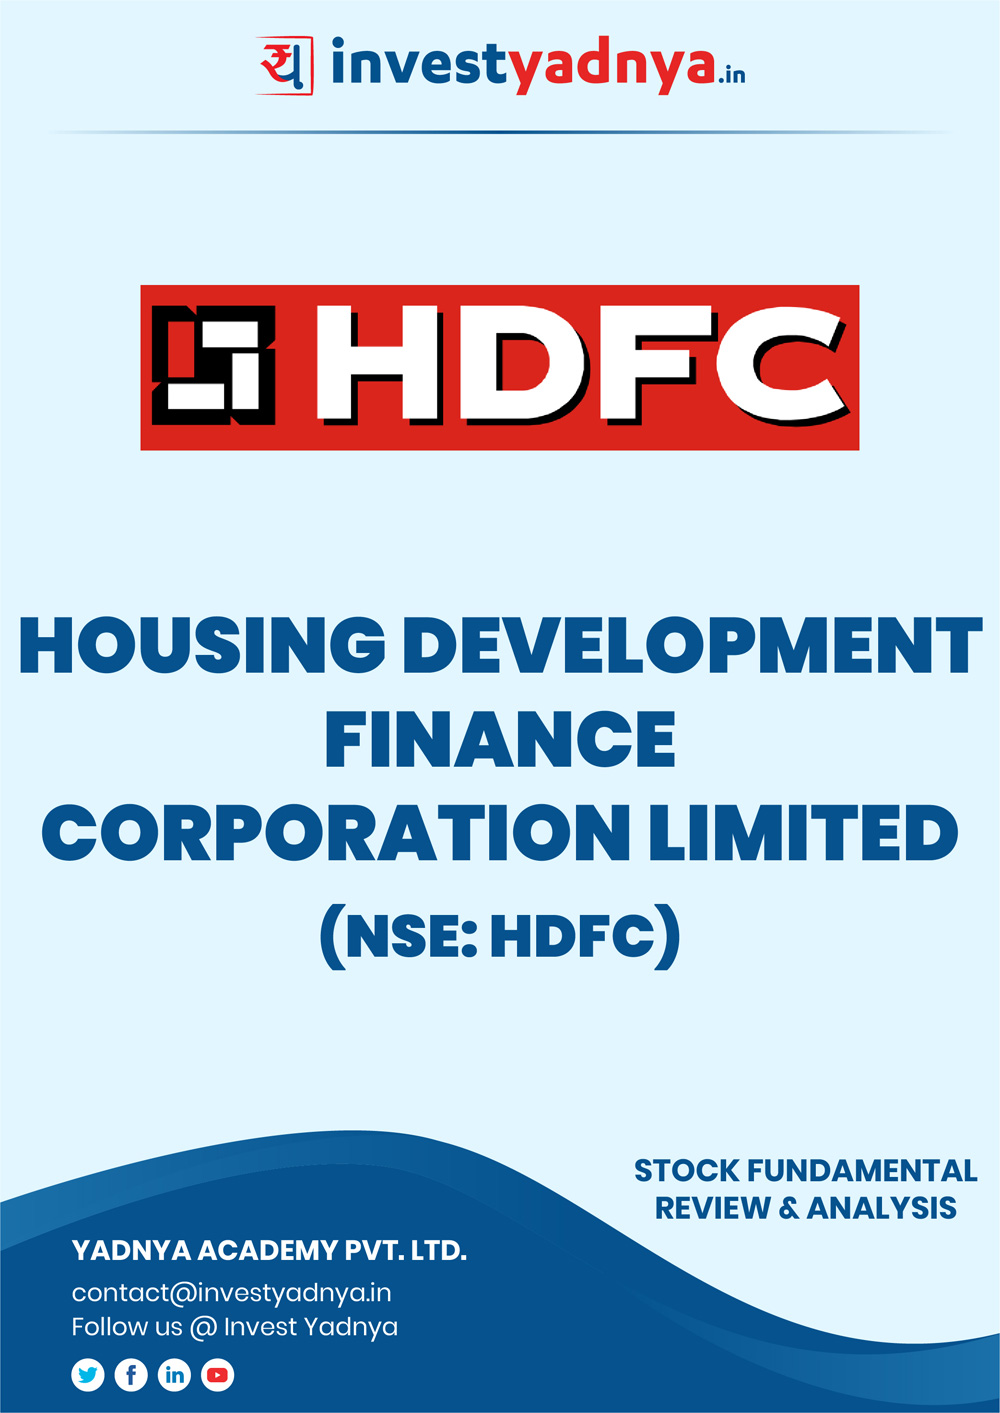 HDFC (Housing Development Finance Corporation) Ltd Company Review & Analysis based on Q32018-19 and FY2017-18 data. The book contains Fundamental Analysis of the company considering both Quantitative (Financial) and Qualitative Parameters.